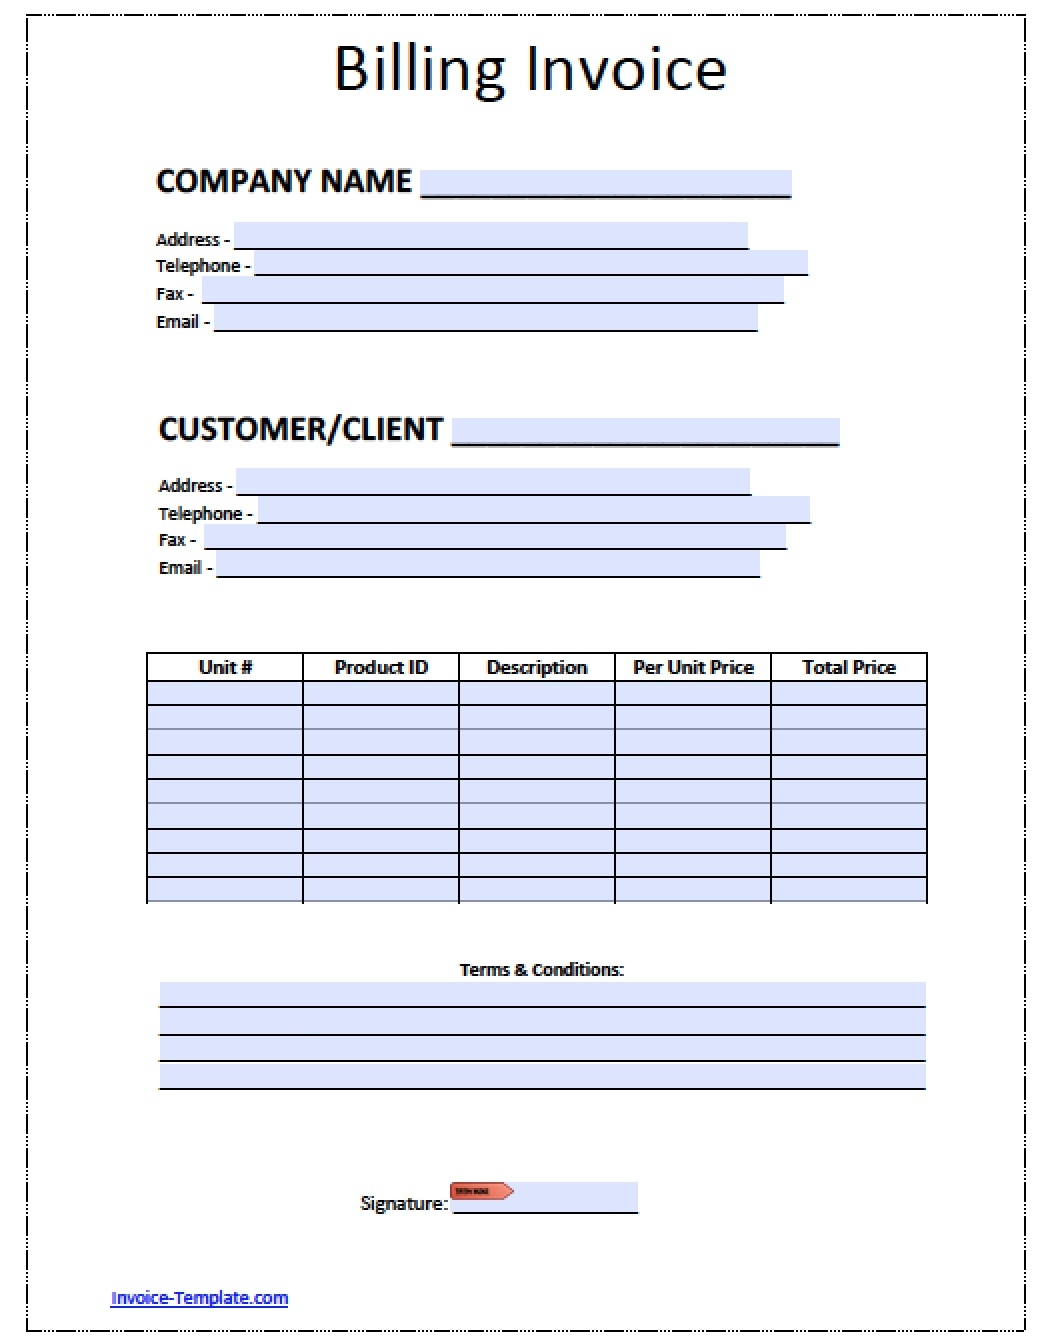 free blank invoice templates in pdf word amp excel ebay invoice example